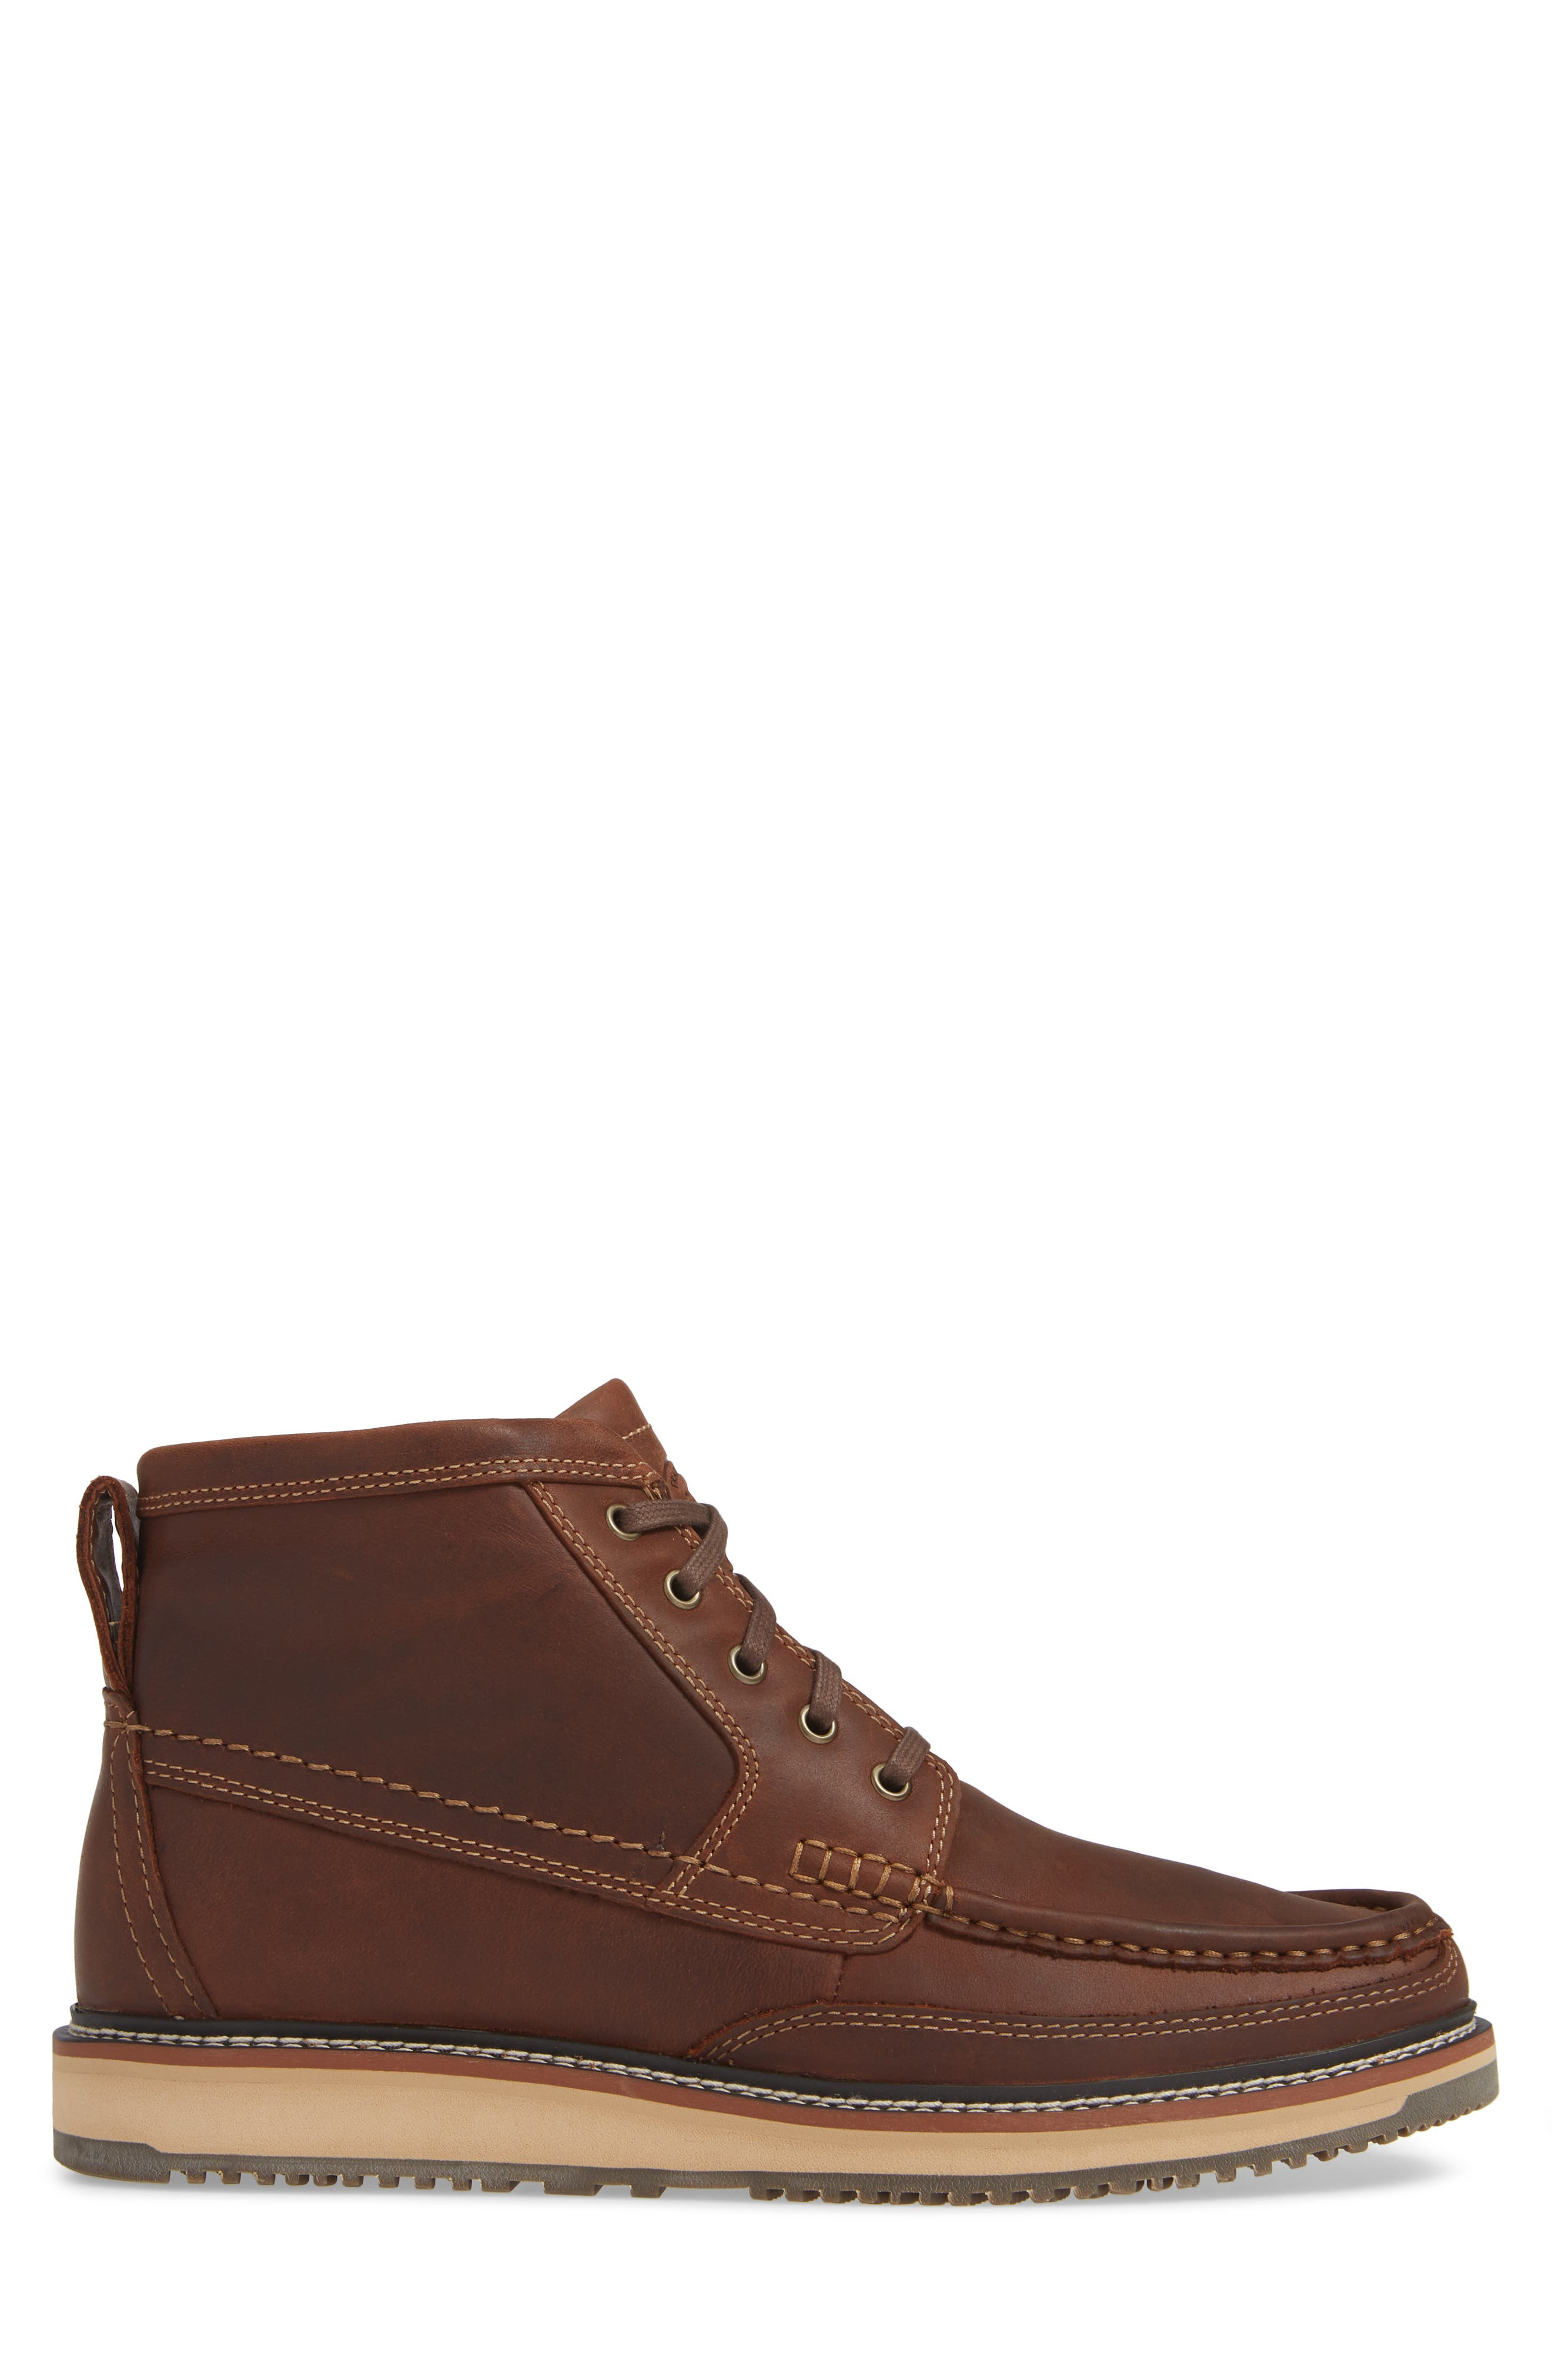 'Lookout' Moc Toe Boot,                             Alternate thumbnail 3, color,                             FOOTHILL BROWN LEATHER